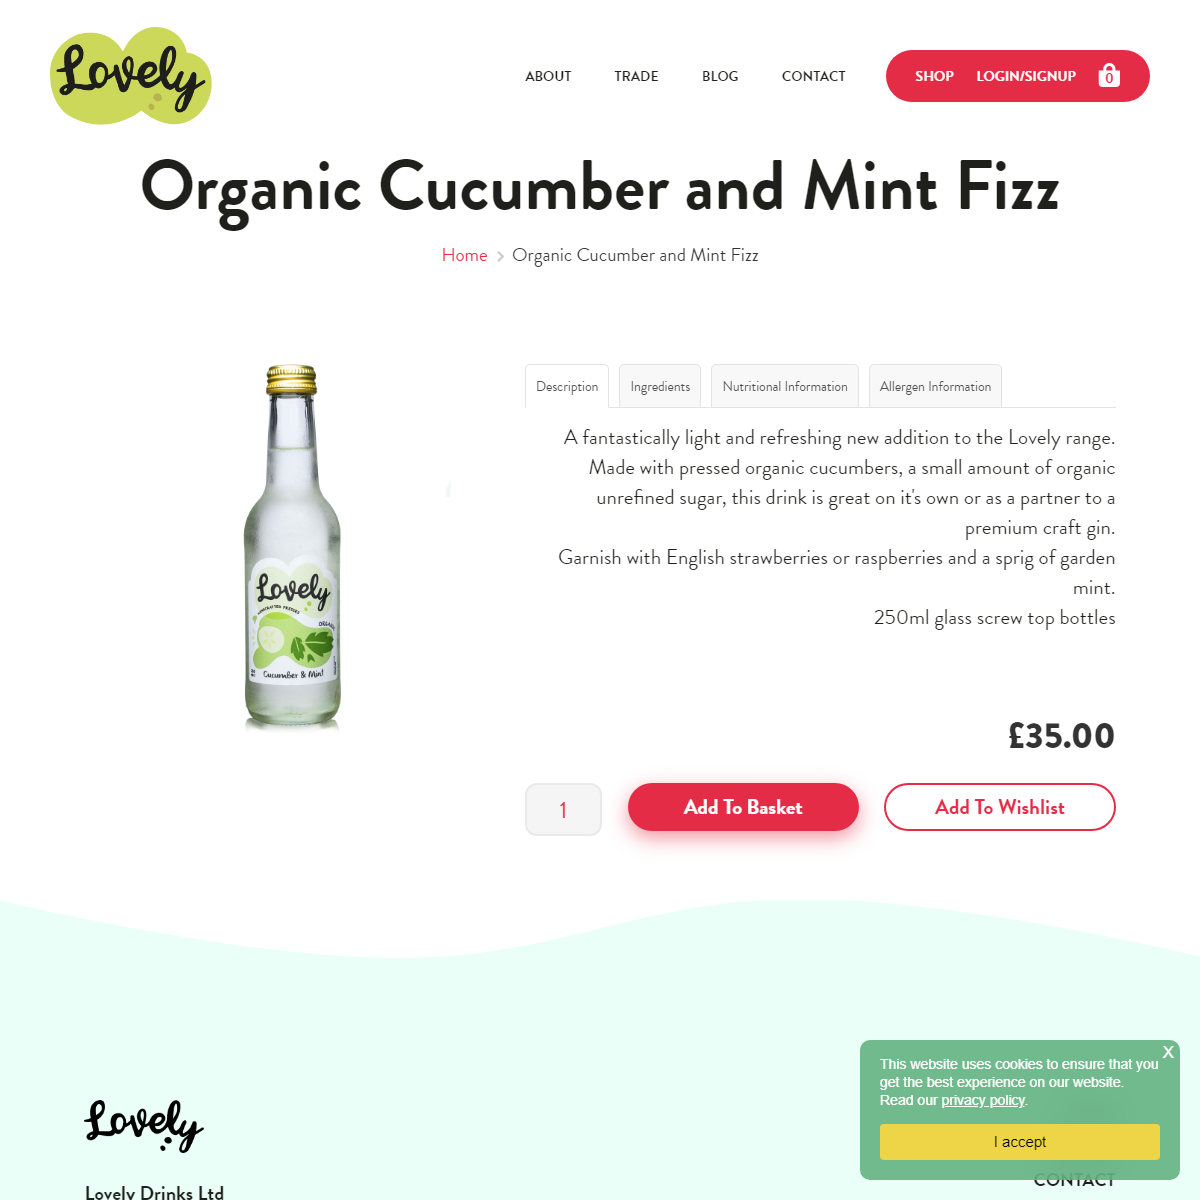 Lovely Drinks Organic Cucumber and Mint